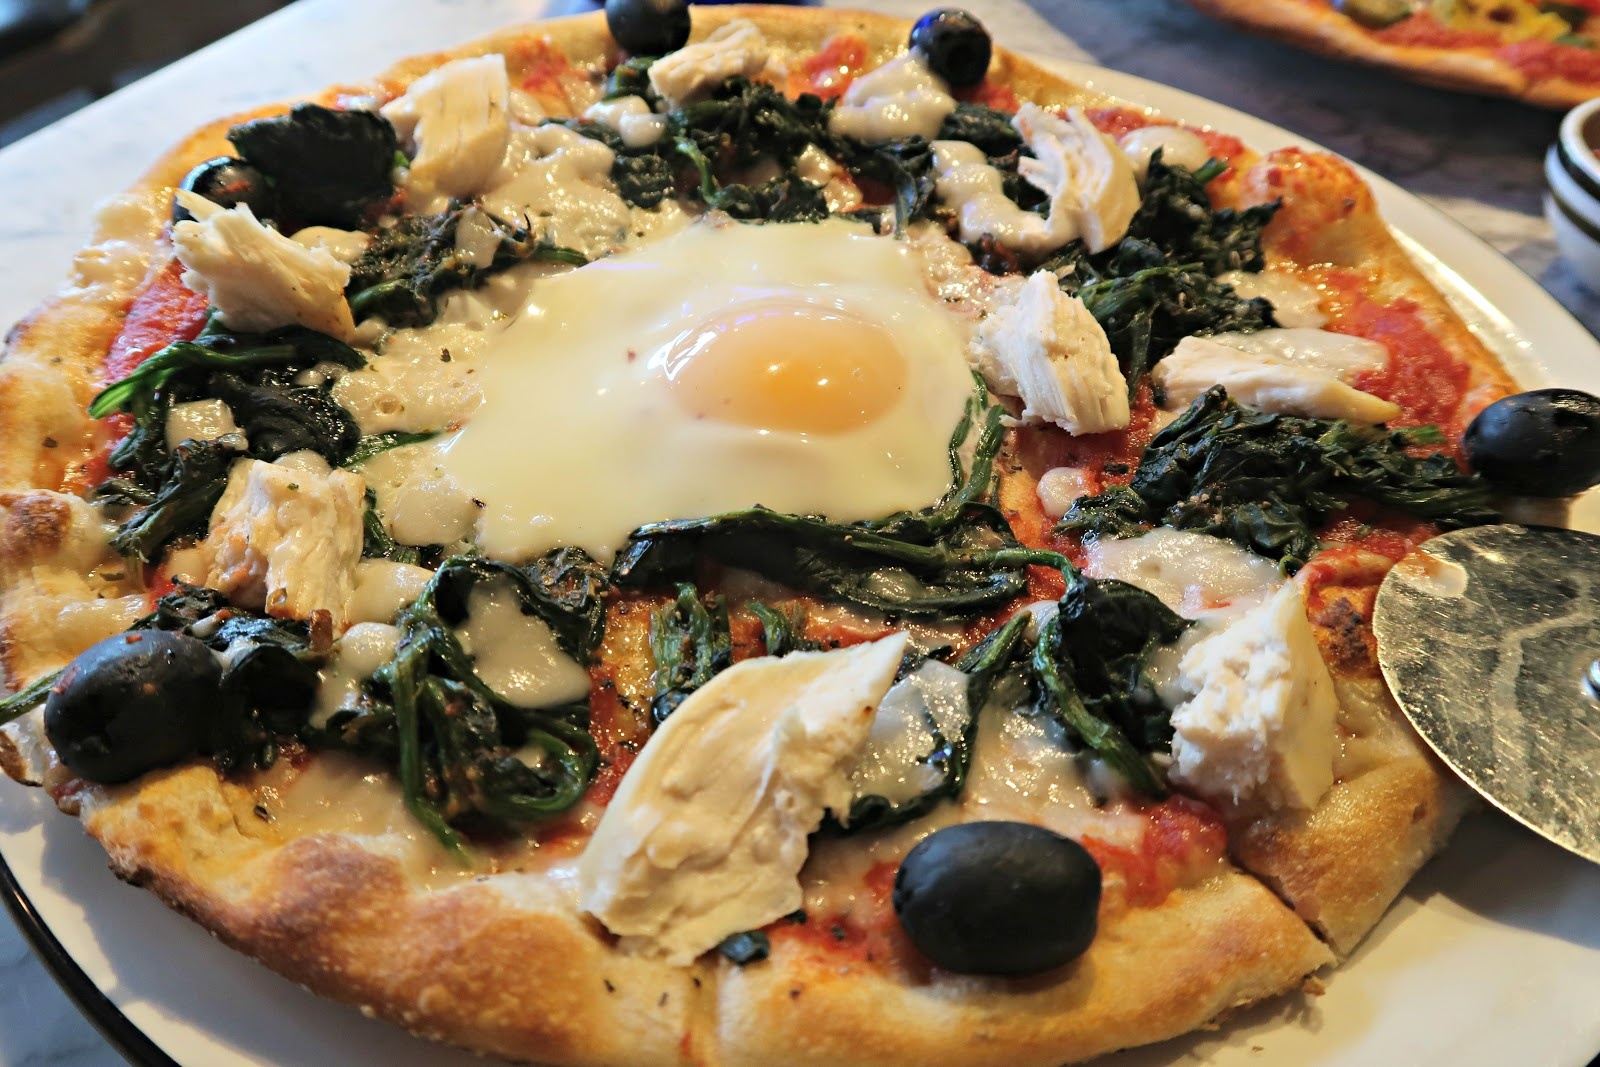 Dairy Free Express Lunch at Pizza Express, Dalton Park UK Lifestyle and Food Blogger WhatLauraLoves